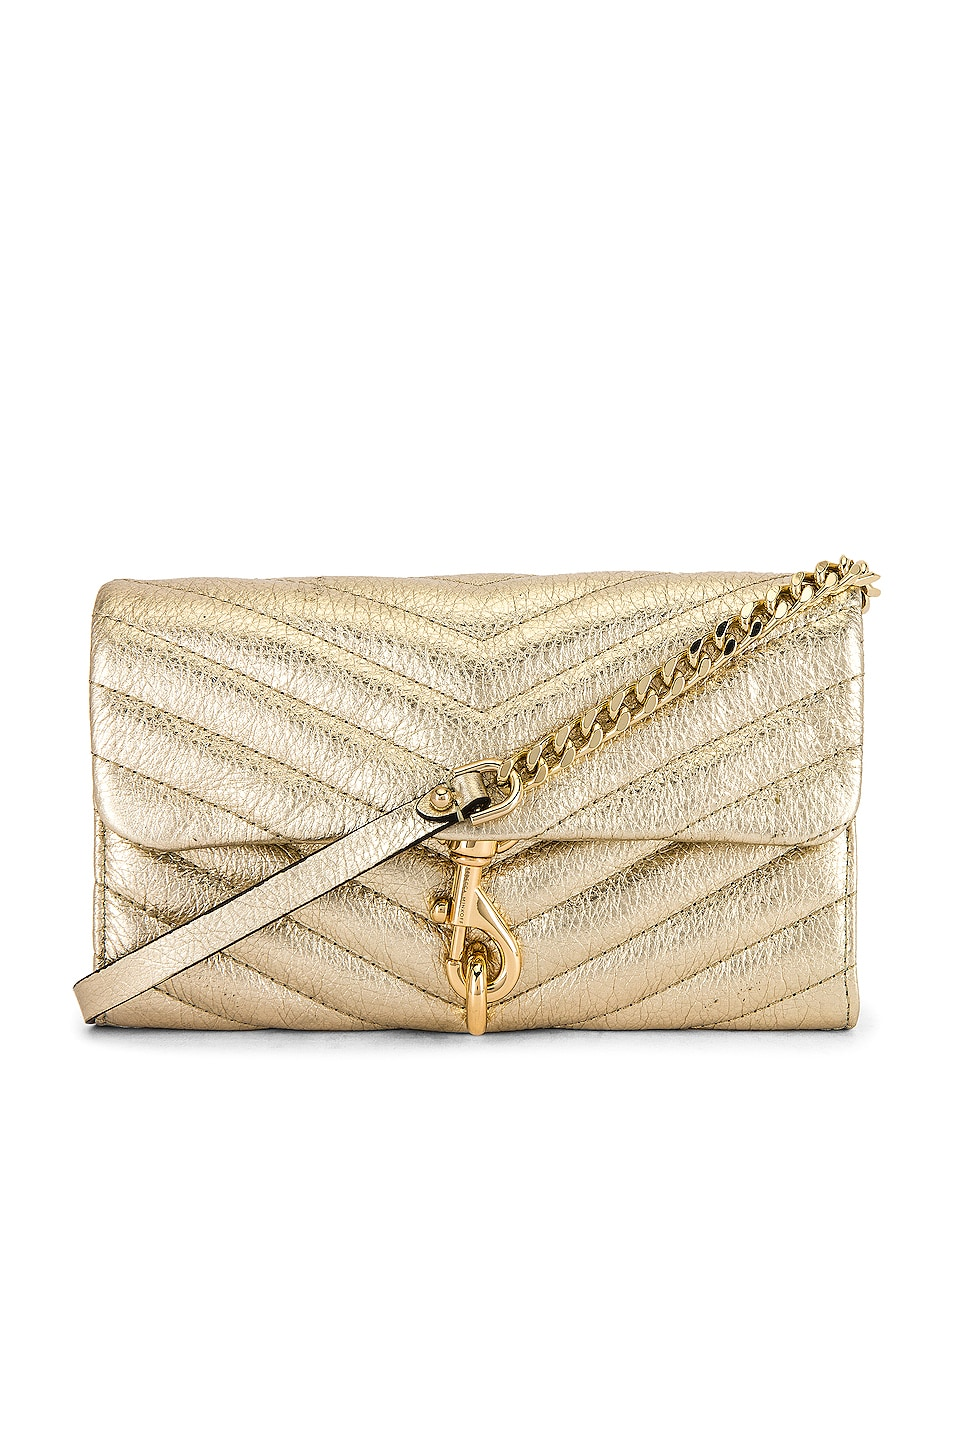 Rebecca Minkoff Edie Wallet On Chain in Gold